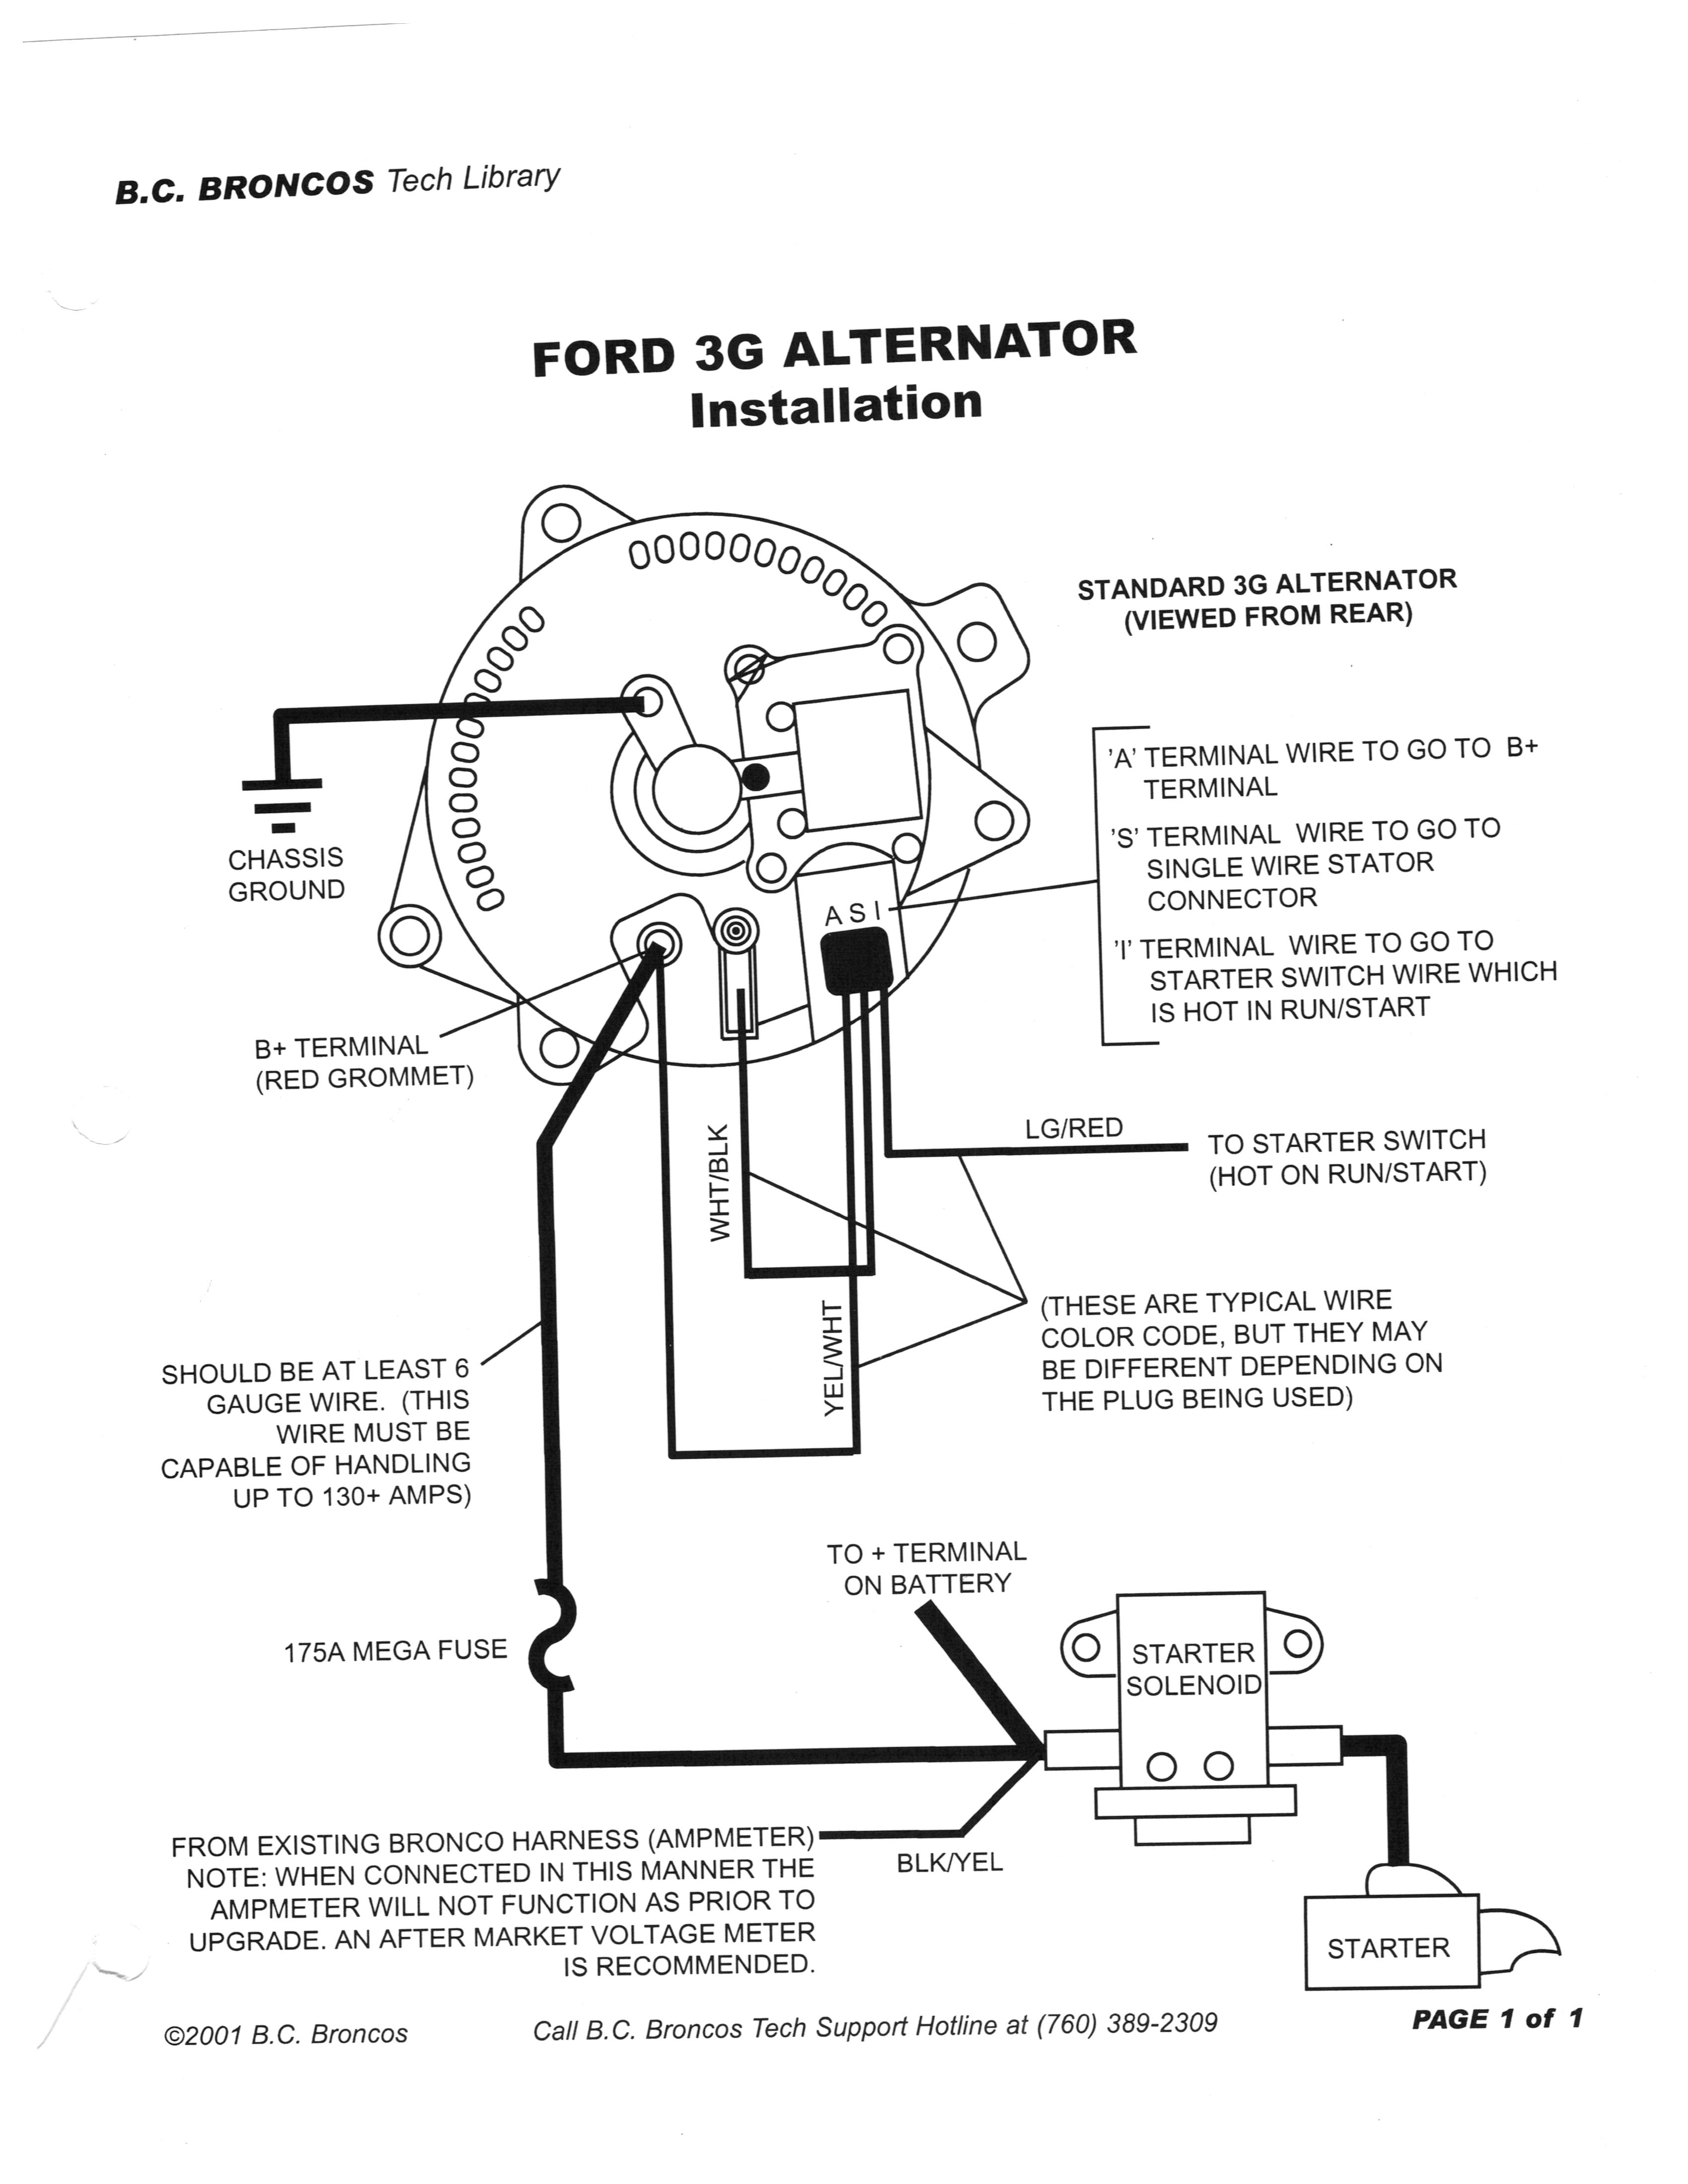 Mustang Alternator Wiring Diagram - Wiring Diagram Replace quit-symbol -  quit-symbol.miramontiseo.it | Mustang Alternator Wiring Diagram |  | quit-symbol.miramontiseo.it